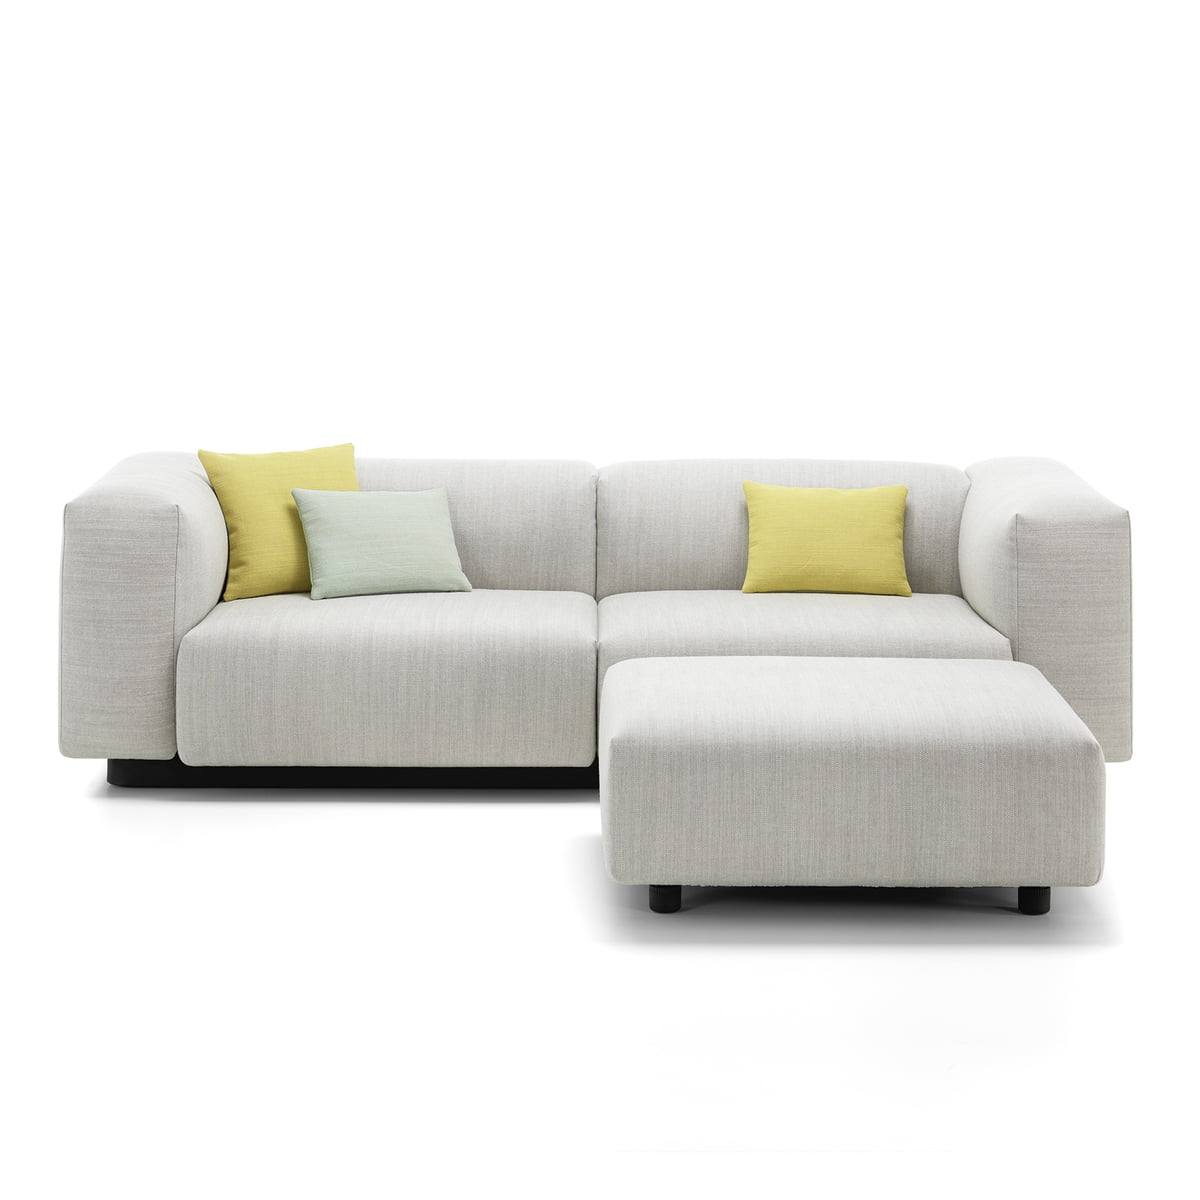 2 seater sofa with chaise furniture sofa sectionals chaise for 2 seater lounge with chaise